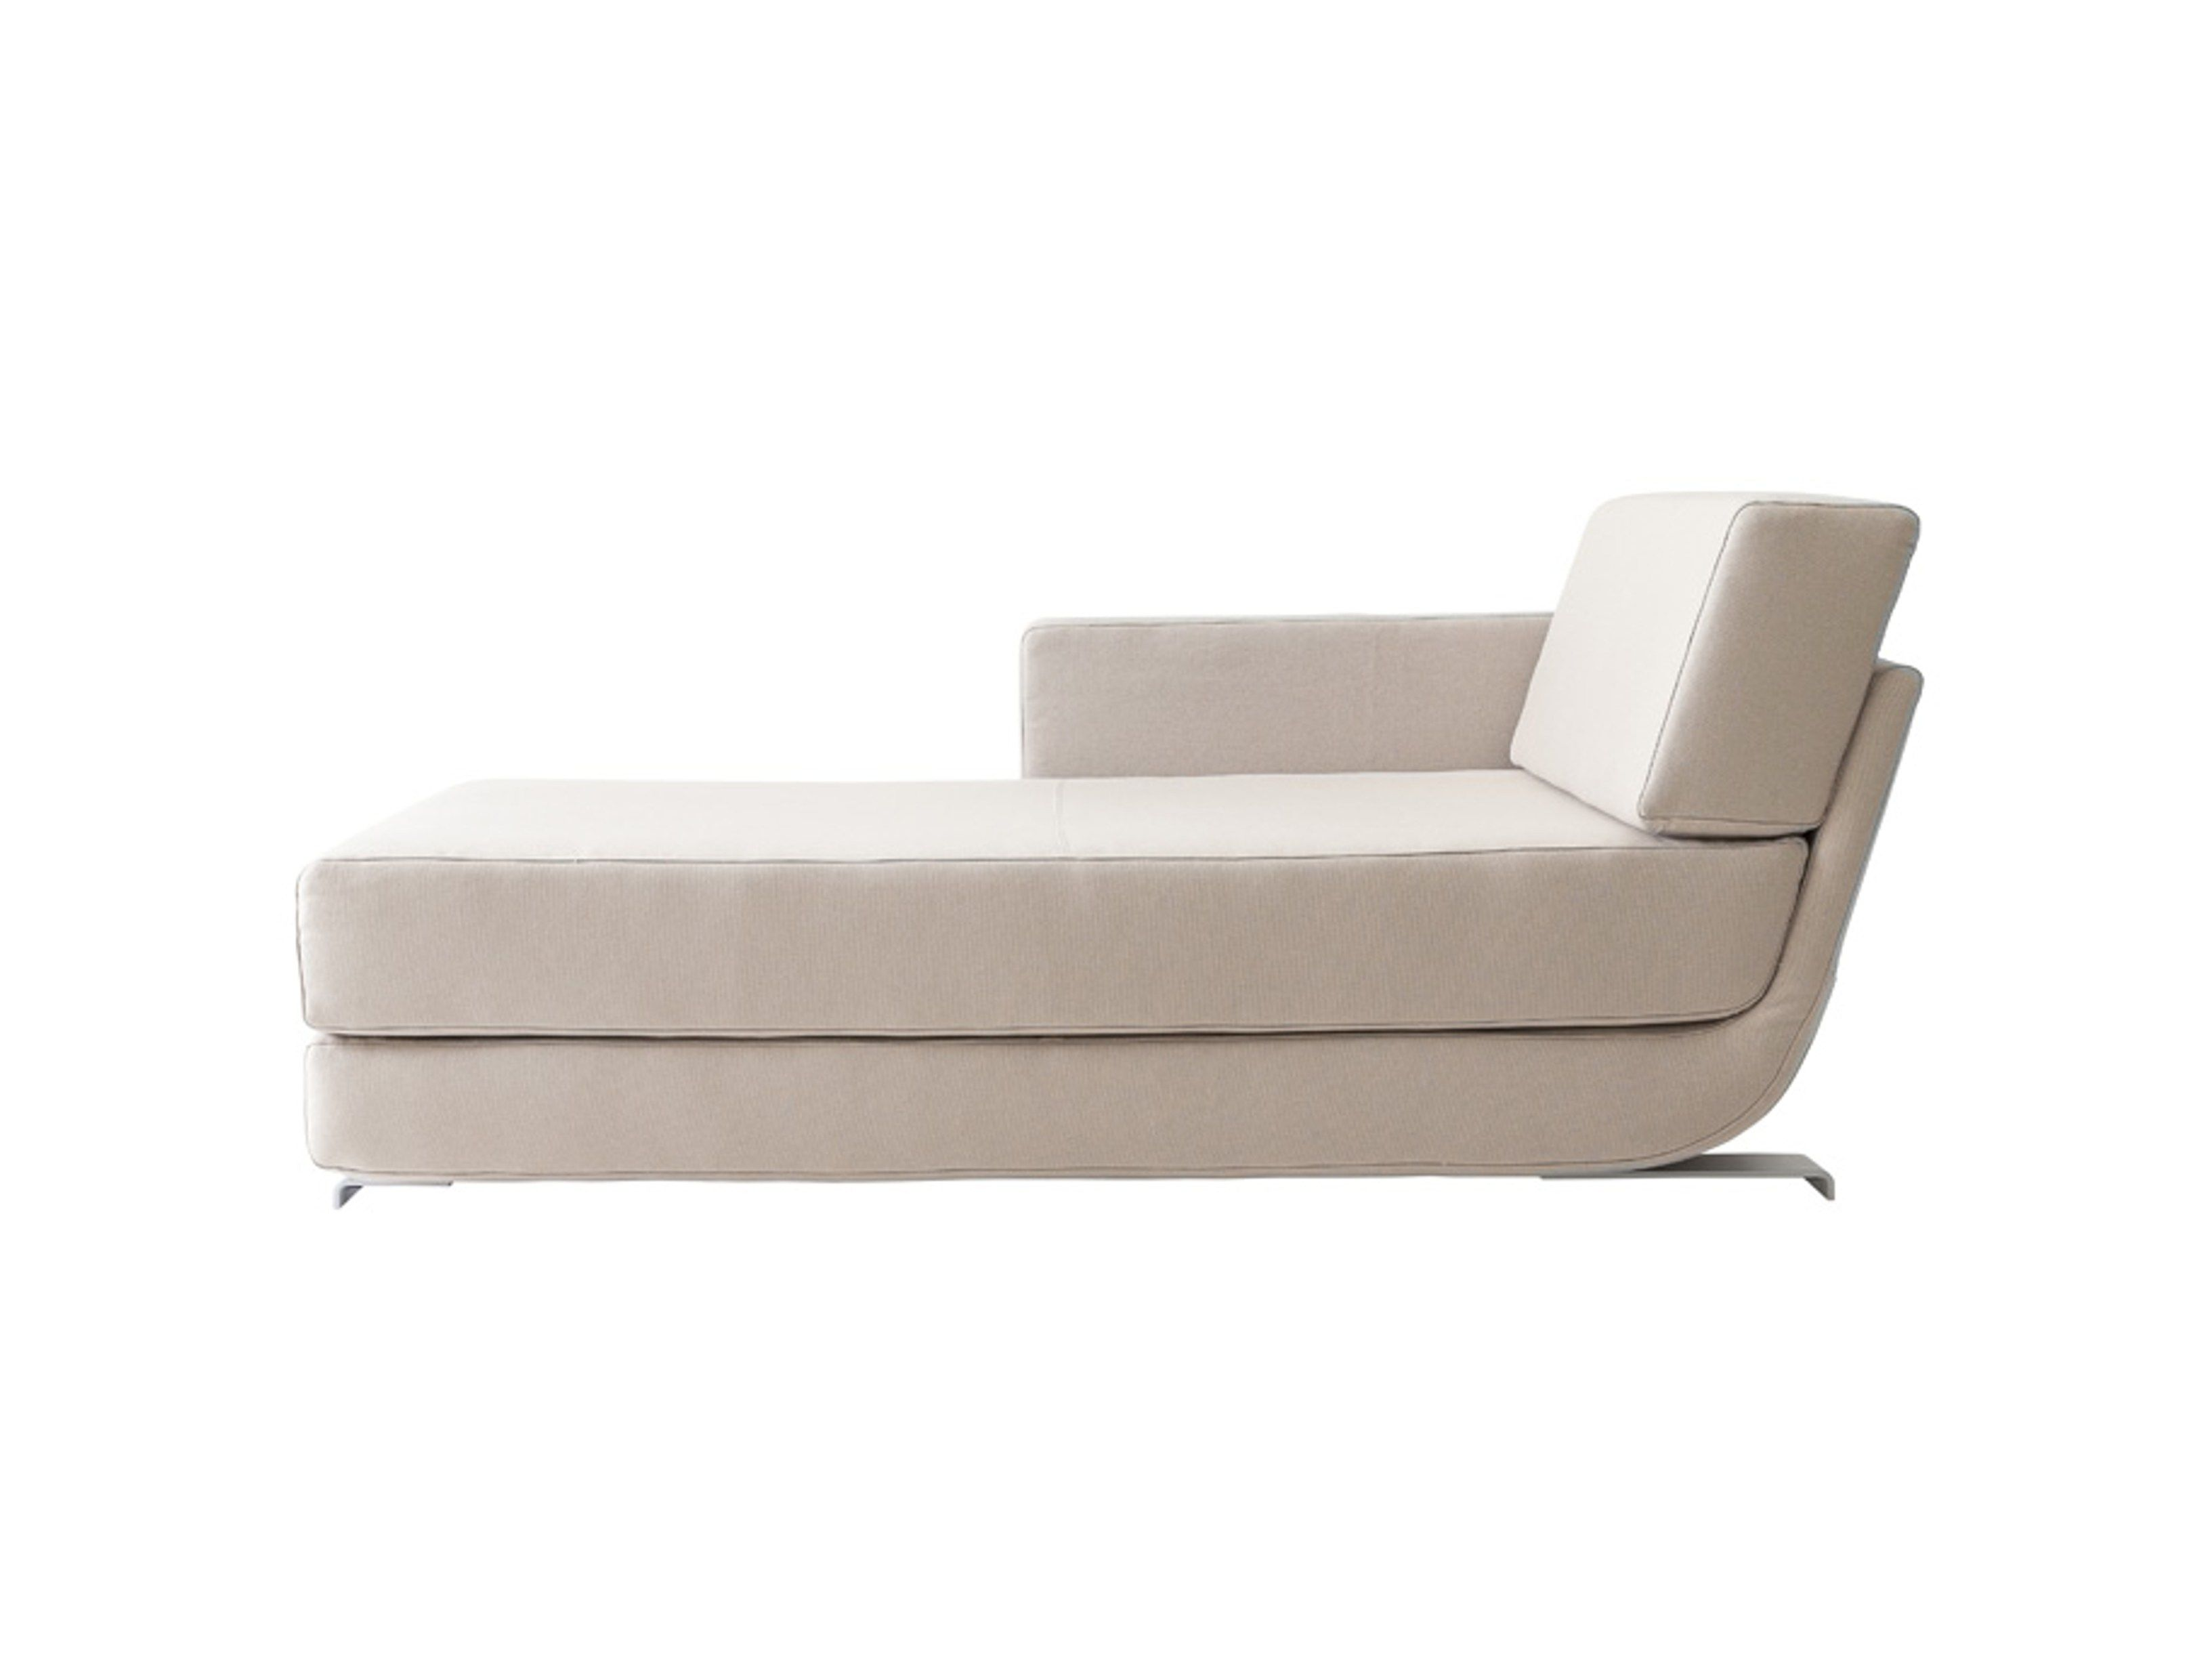 amazing gray sleeper sofa model-Wonderful Gray Sleeper sofa Decoration